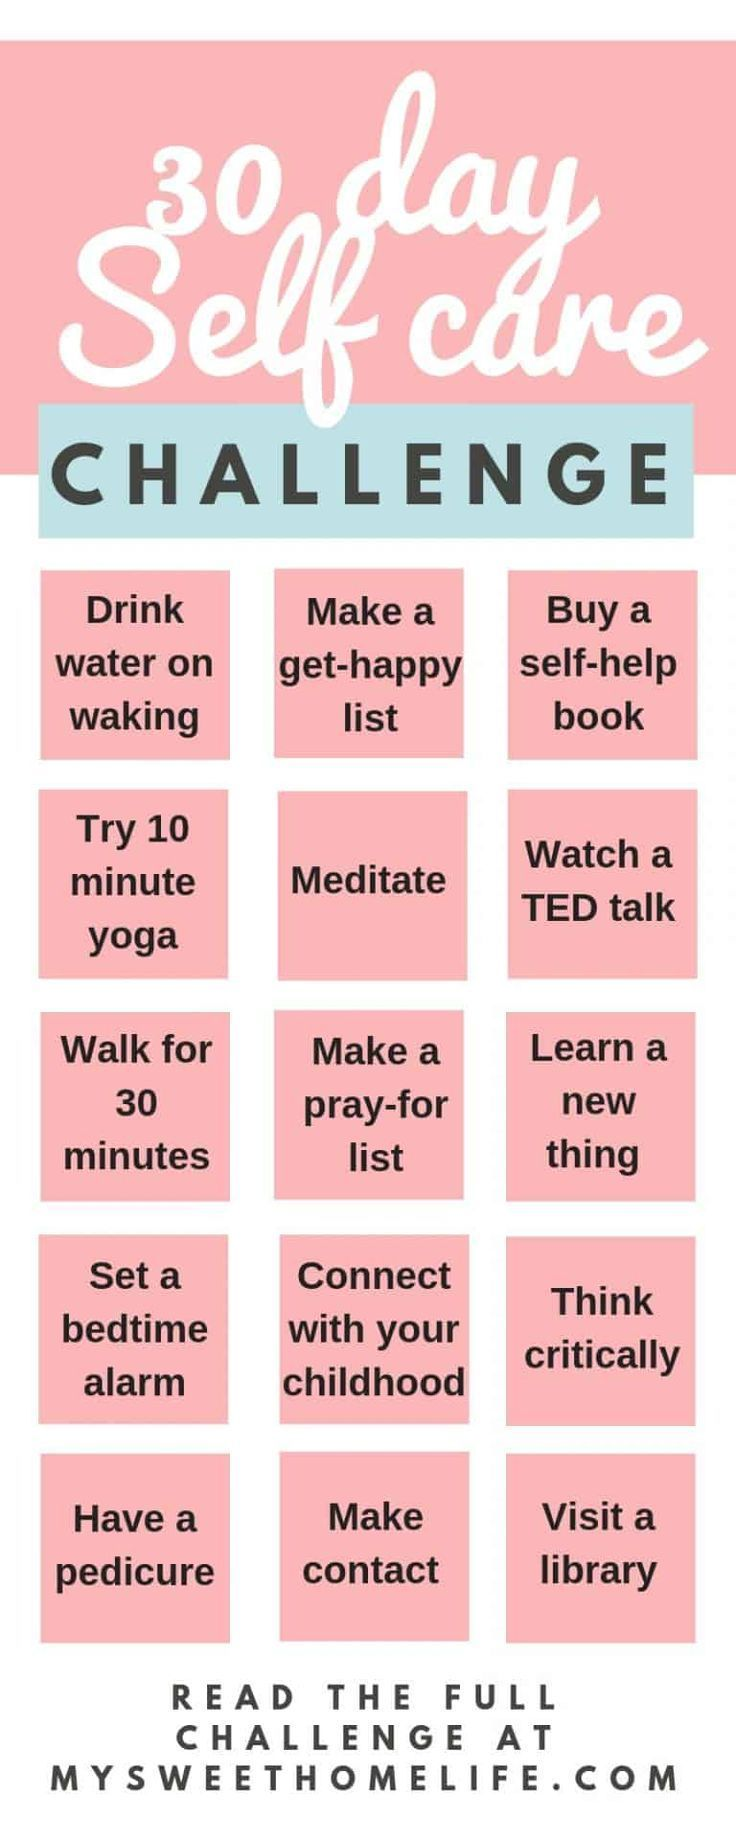 30 day self-care challenge for body, mind and spirit